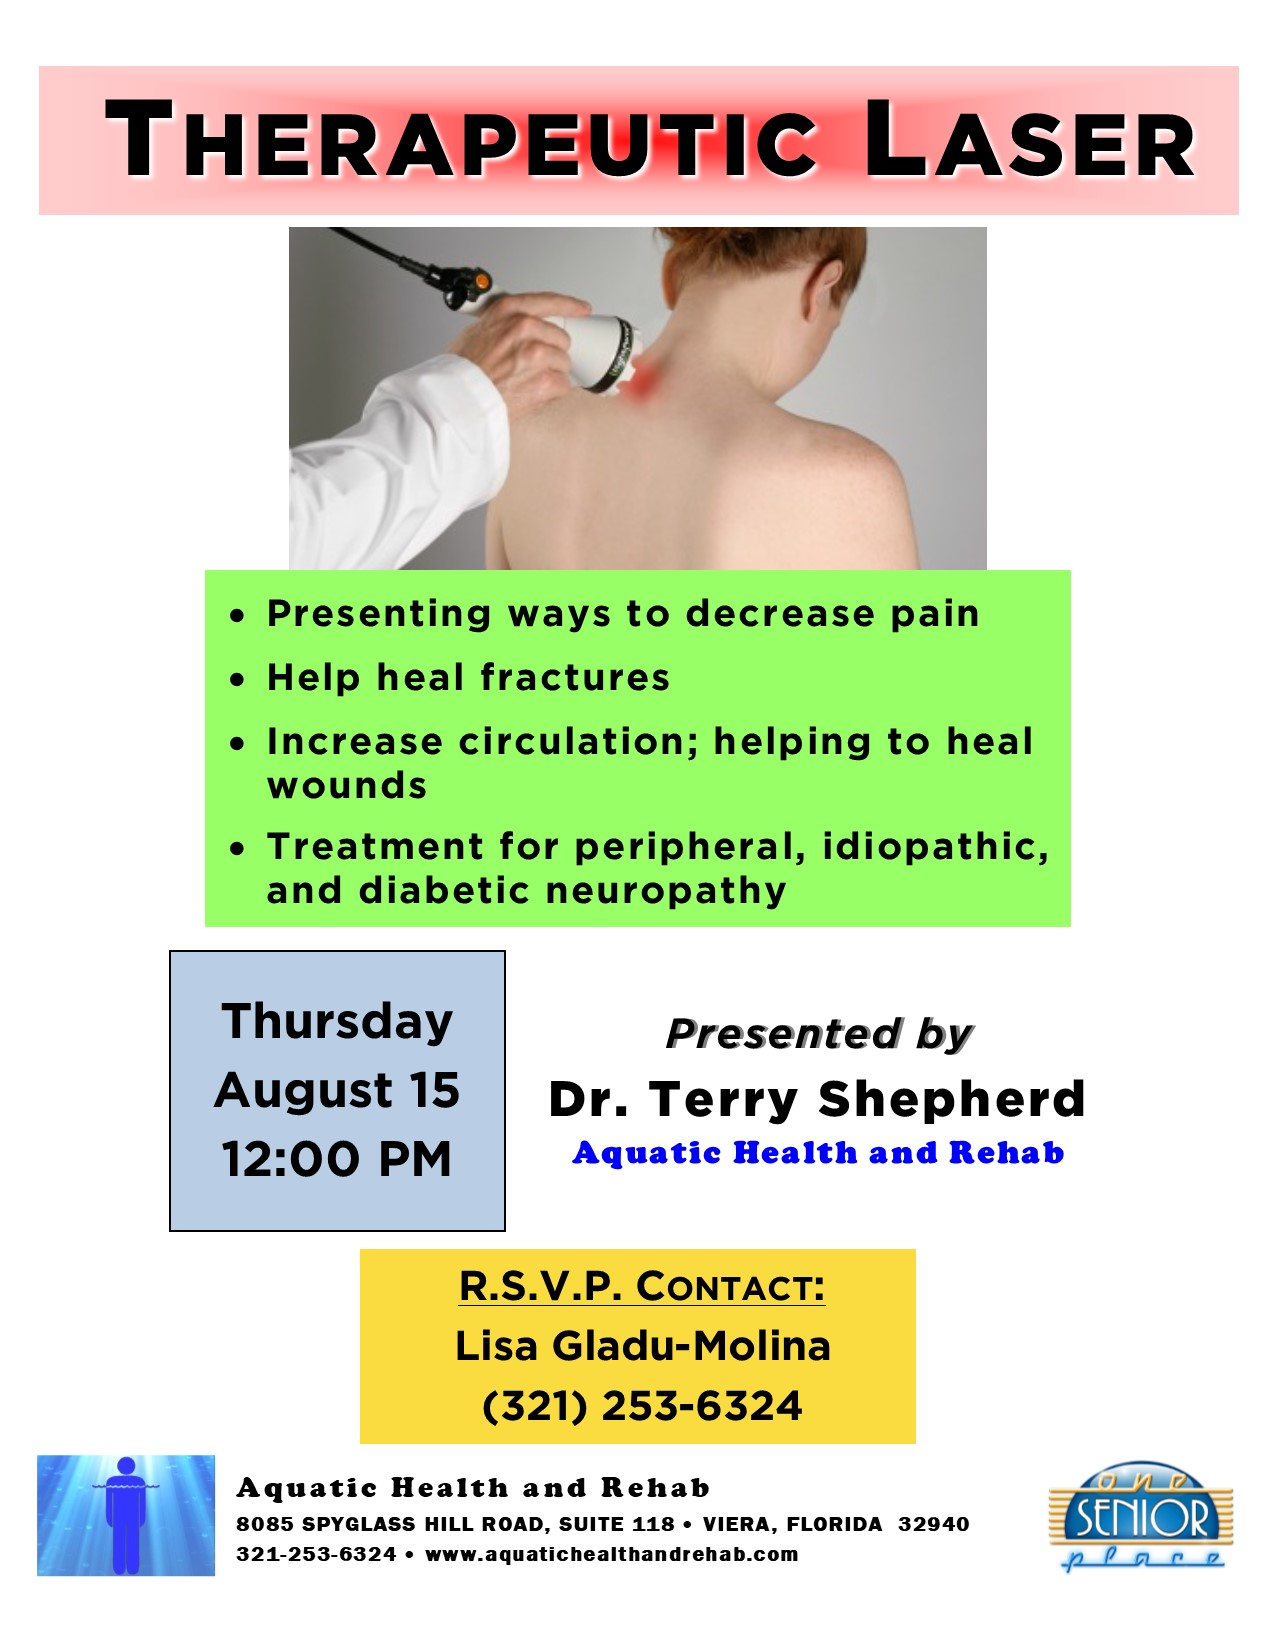 Therapeutic Laser presented by Aquatic Health and Rehab